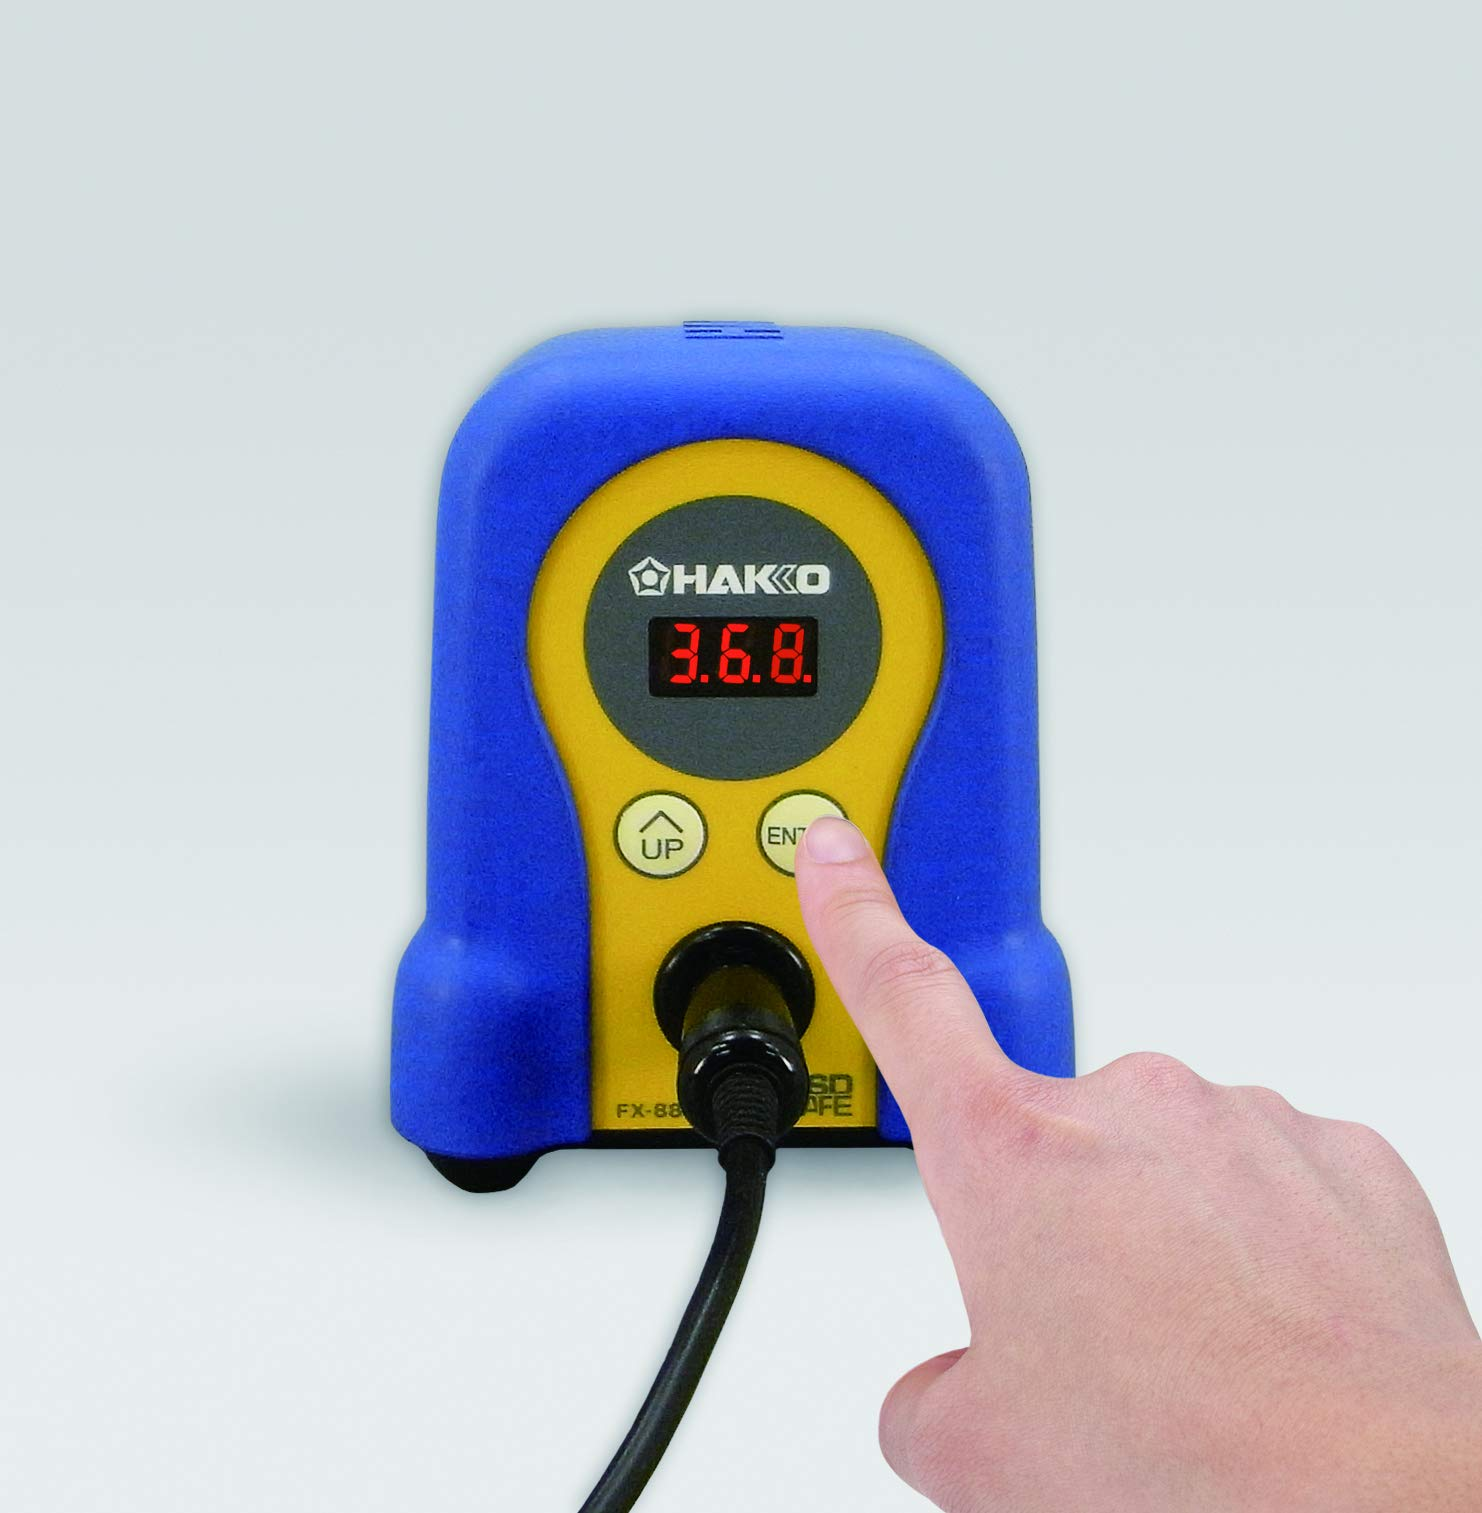 Hakko FX888D-23BY Digital Soldering Station FX-888D FX-888 (blue & yellow) by Hakko